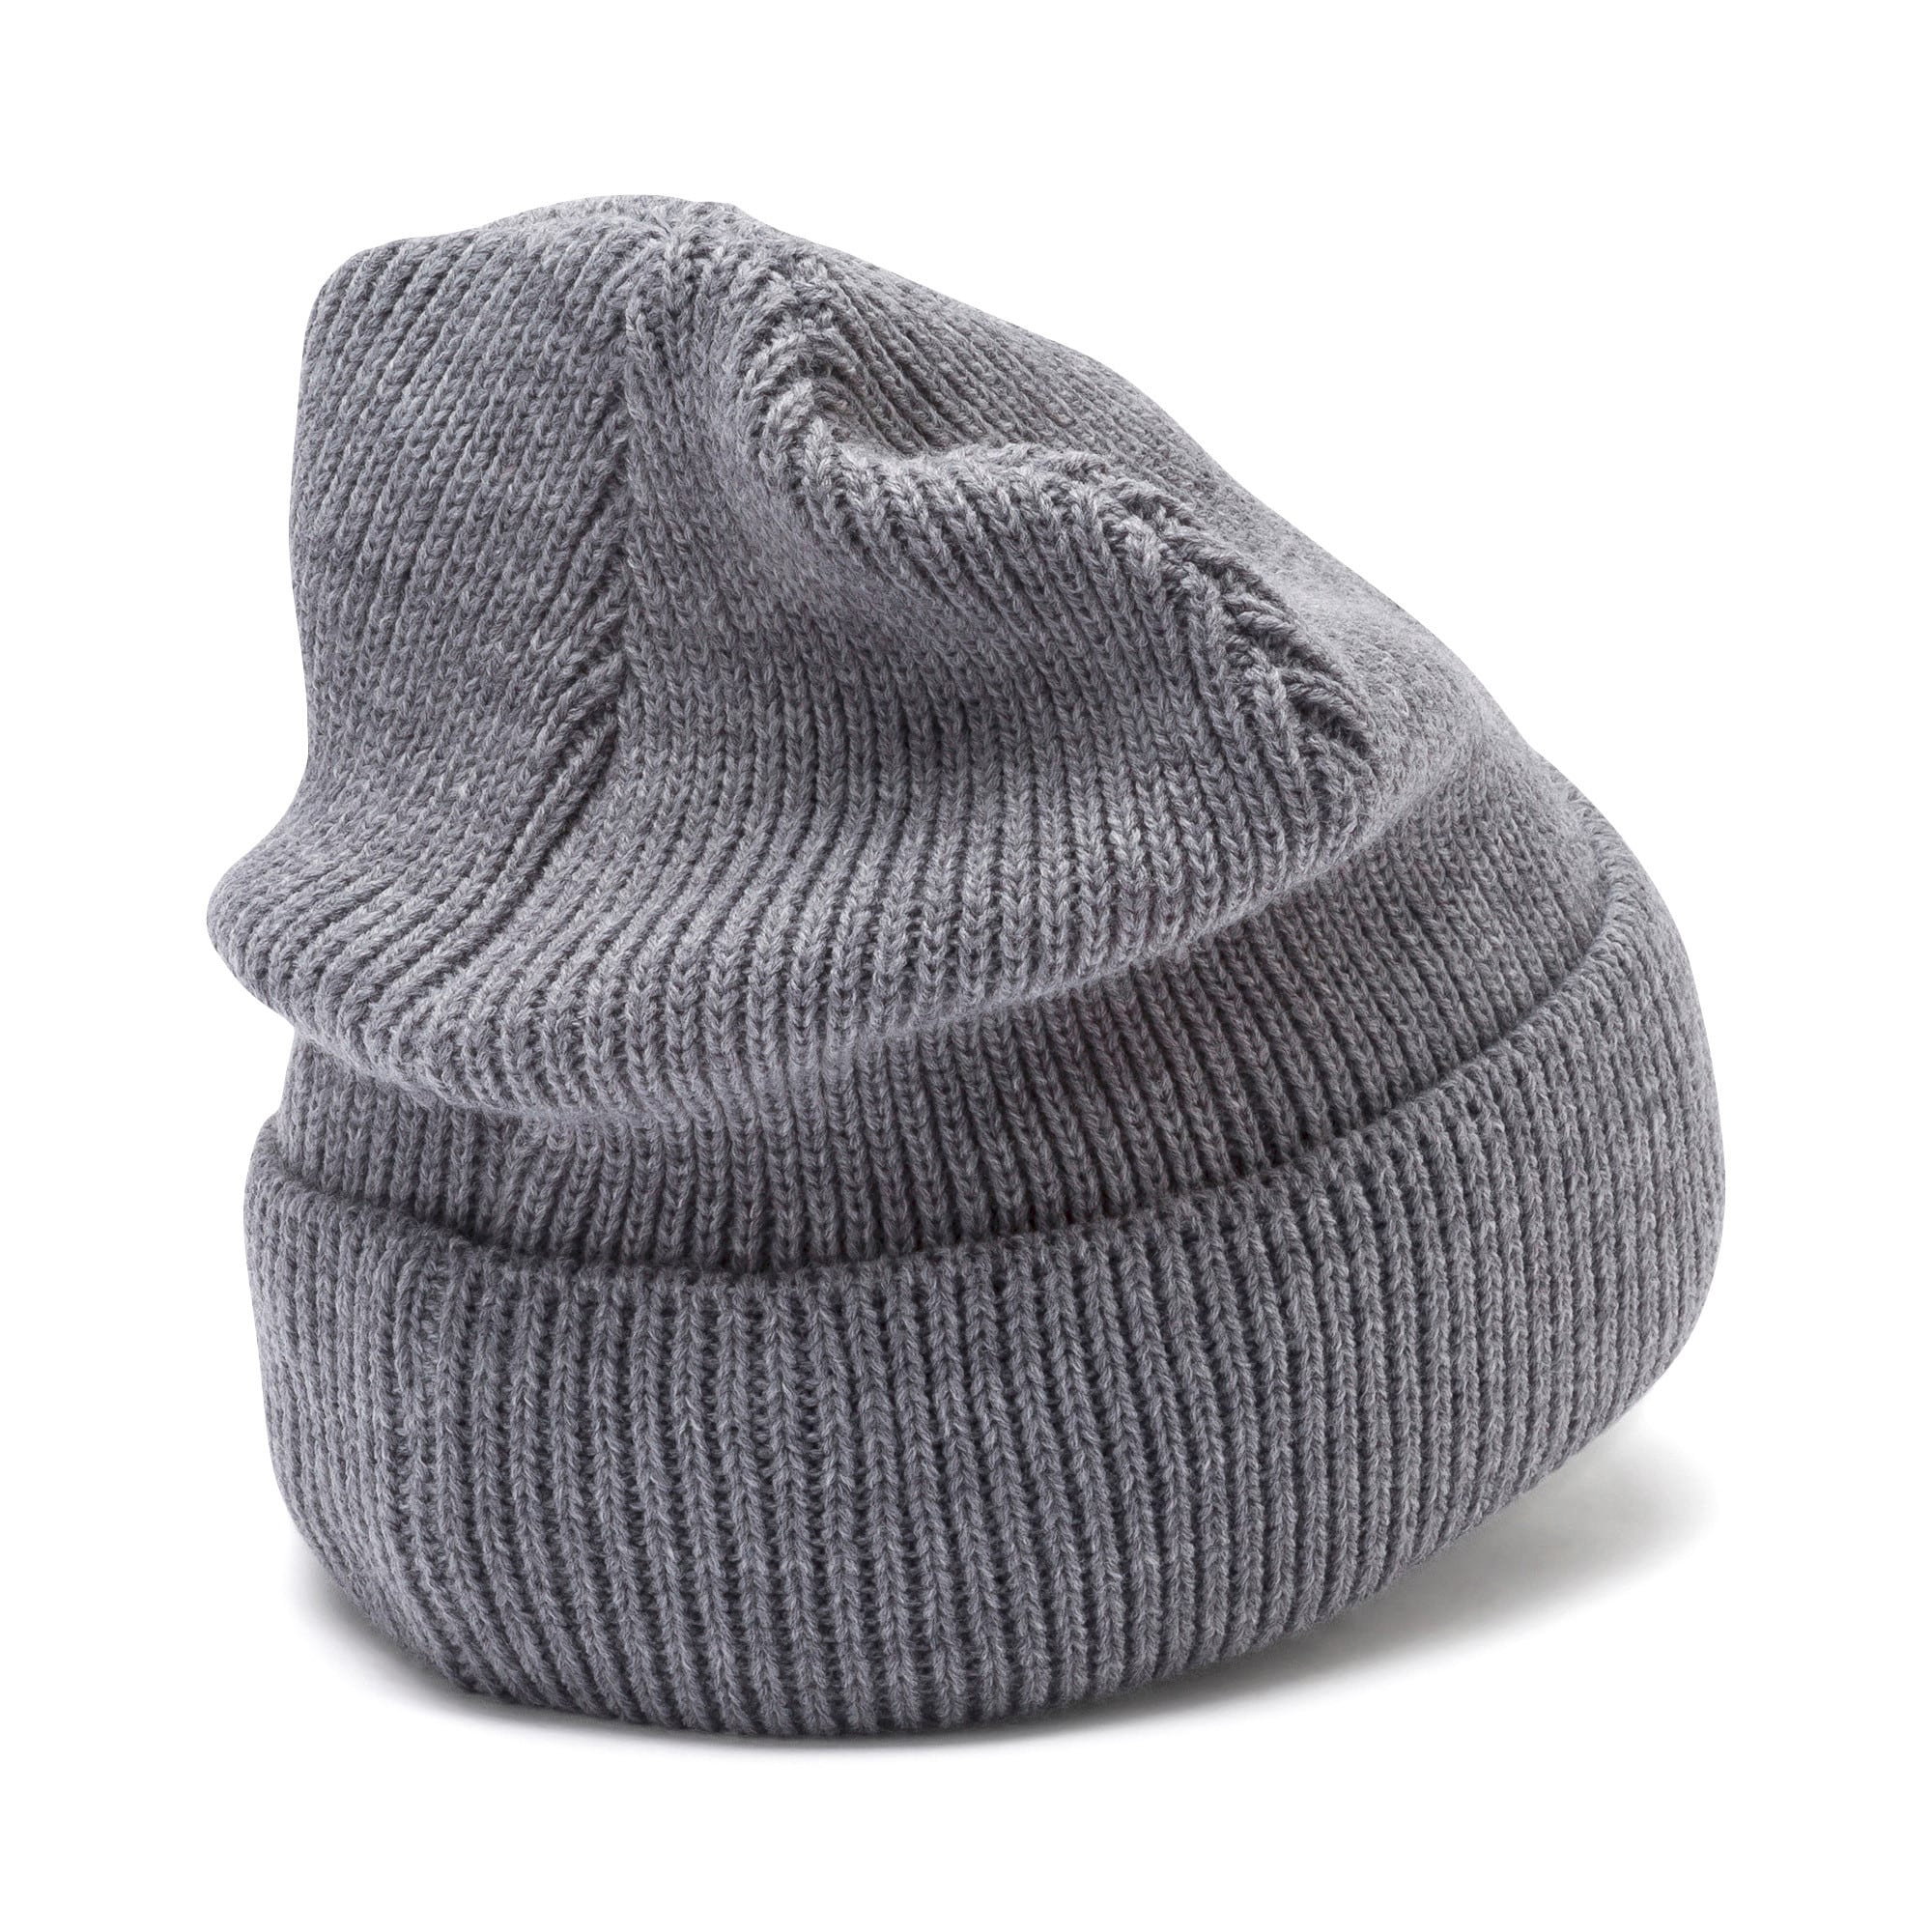 Thumbnail 3 of Bonnet Ripp classique, Medium Gray Heather, medium